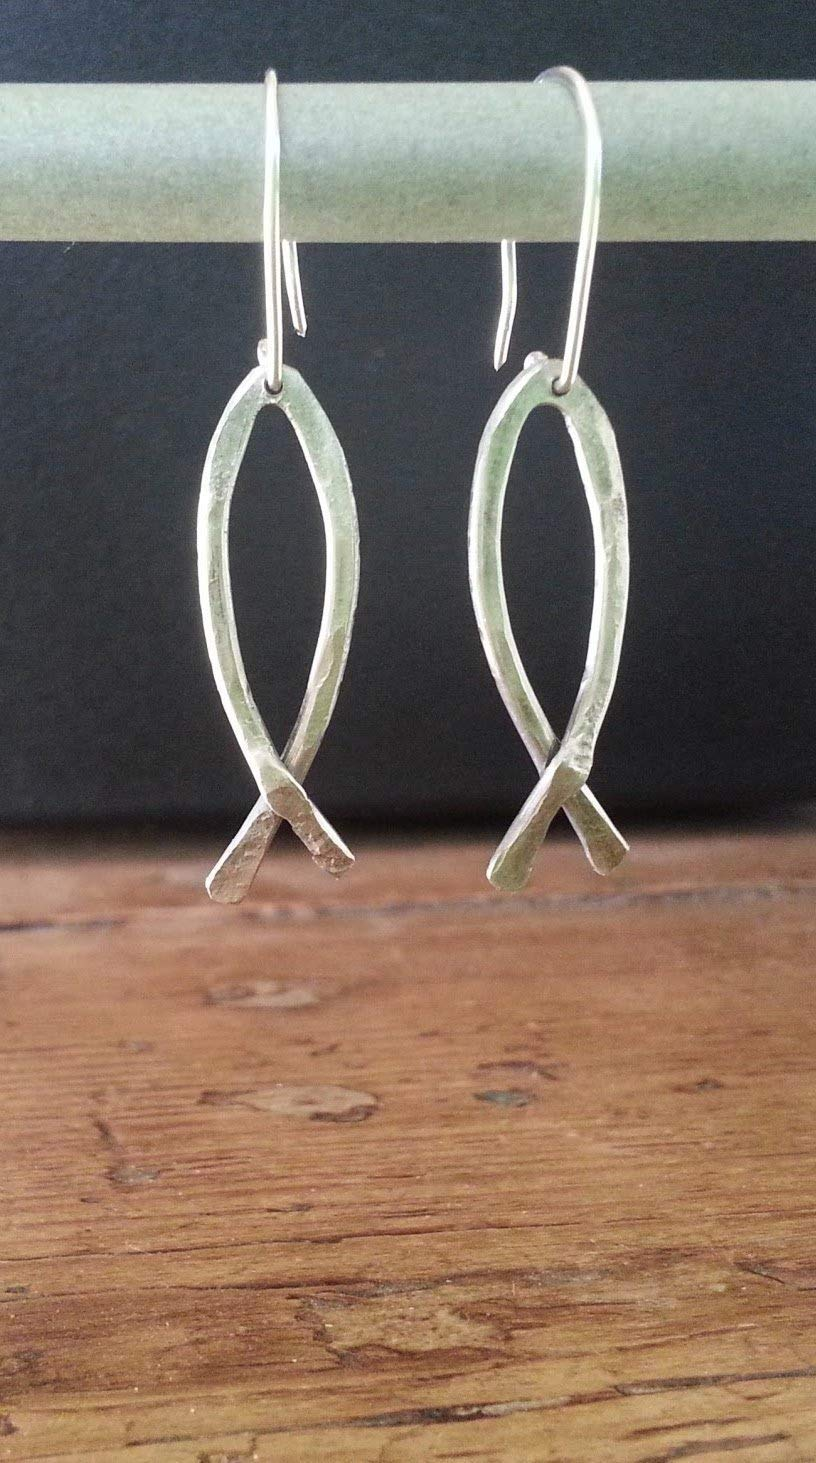 Unique Recycled Ichthus Fish Earrings made from upcycled aluminum wire